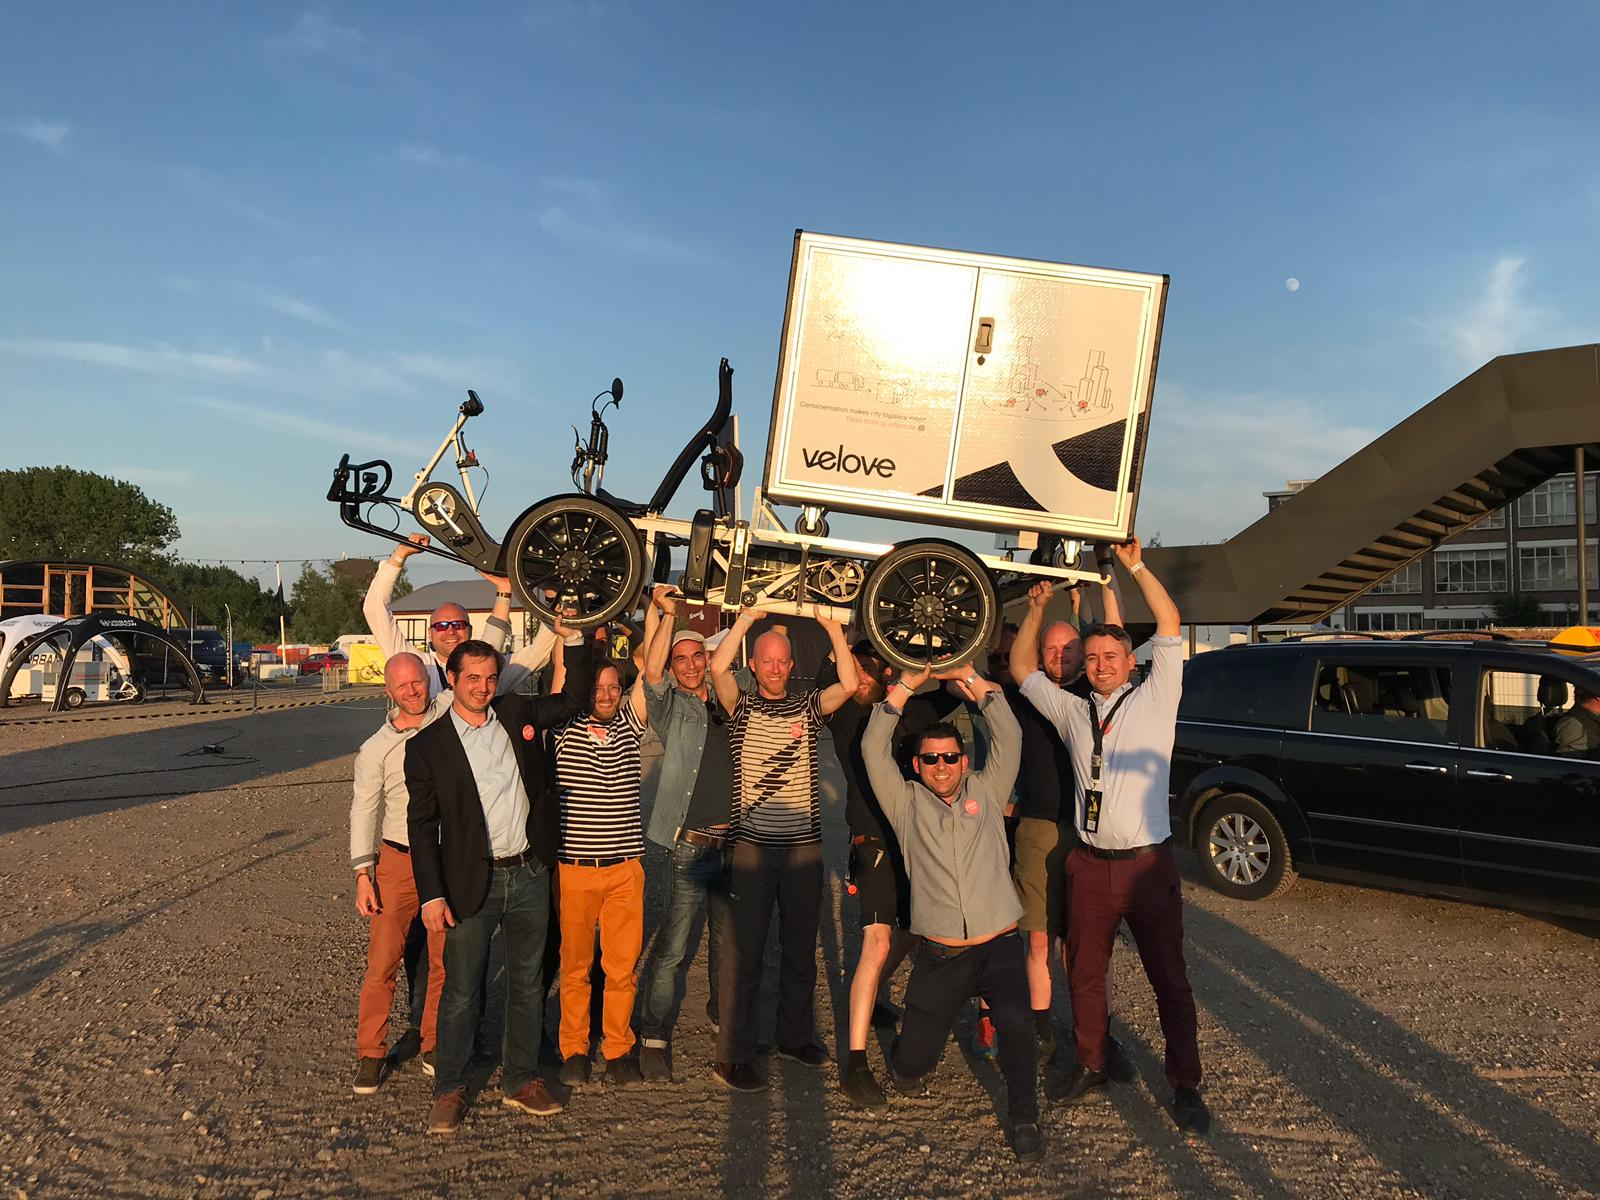 Electric Cargo bike for last mile delivery - The team that made it happen